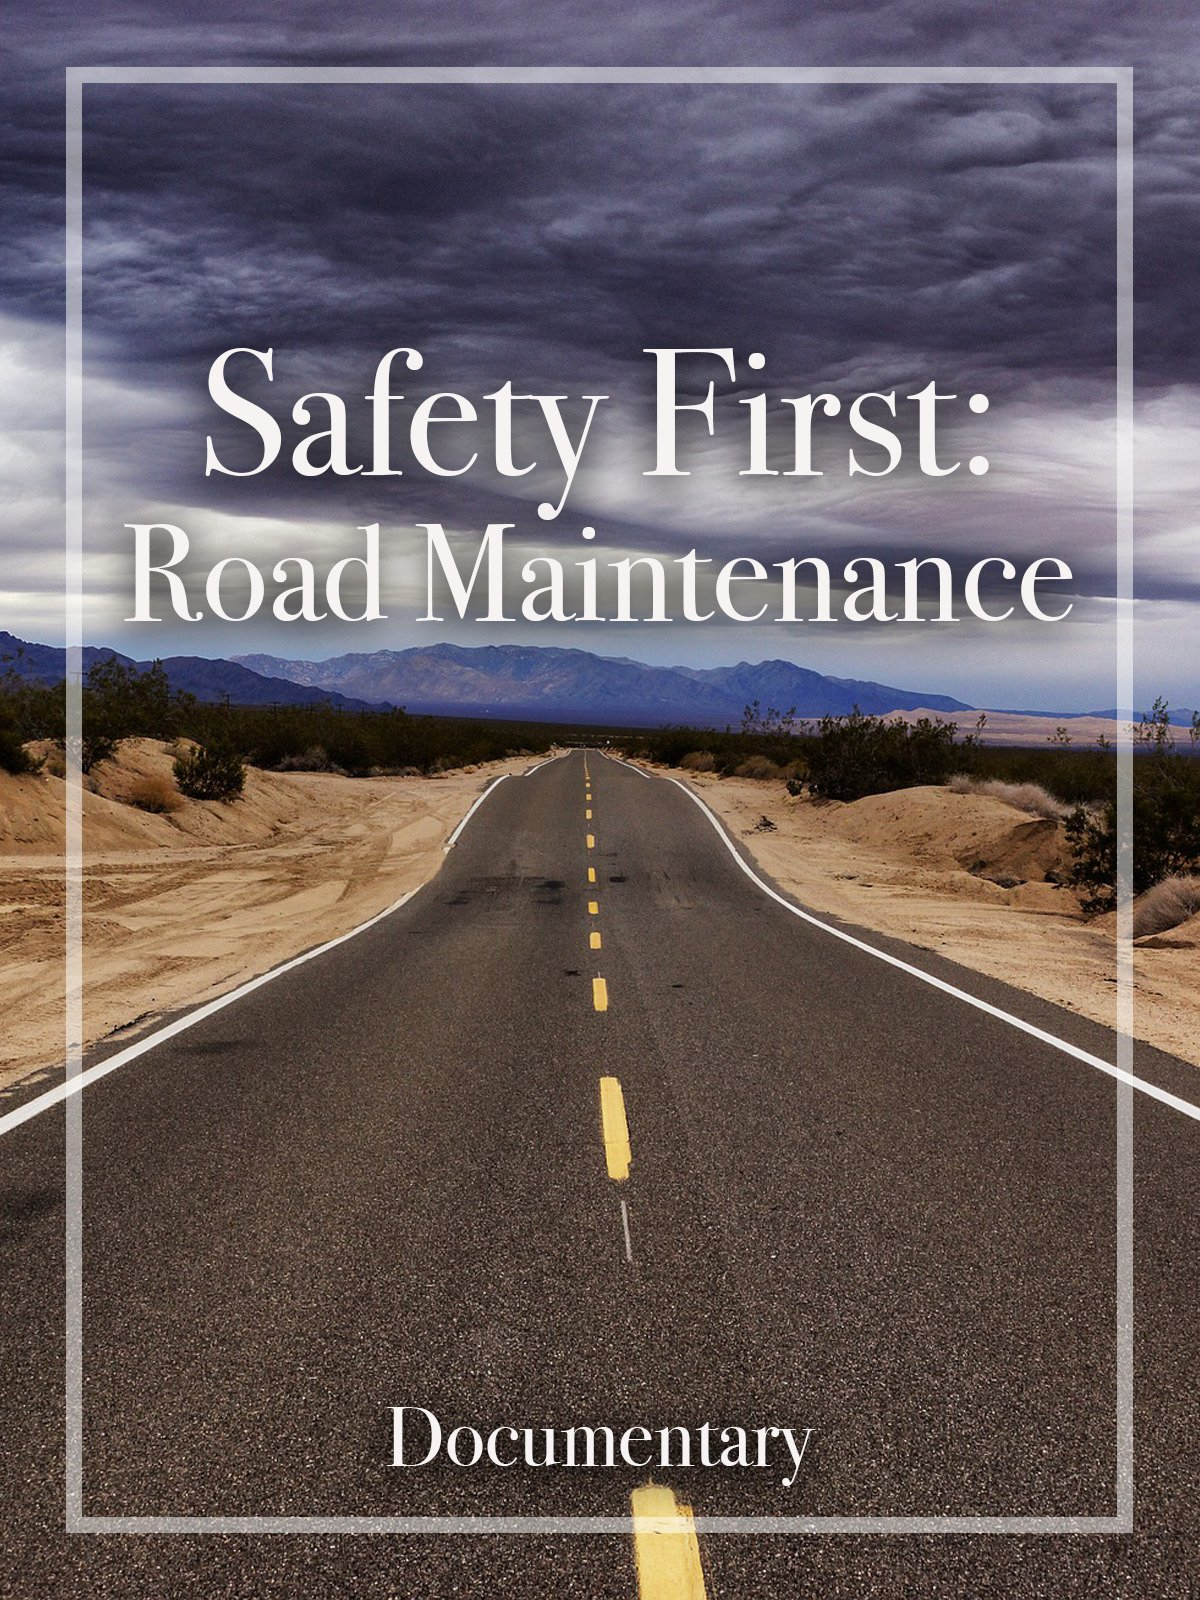 Safety First: Road Maintenance Documentary